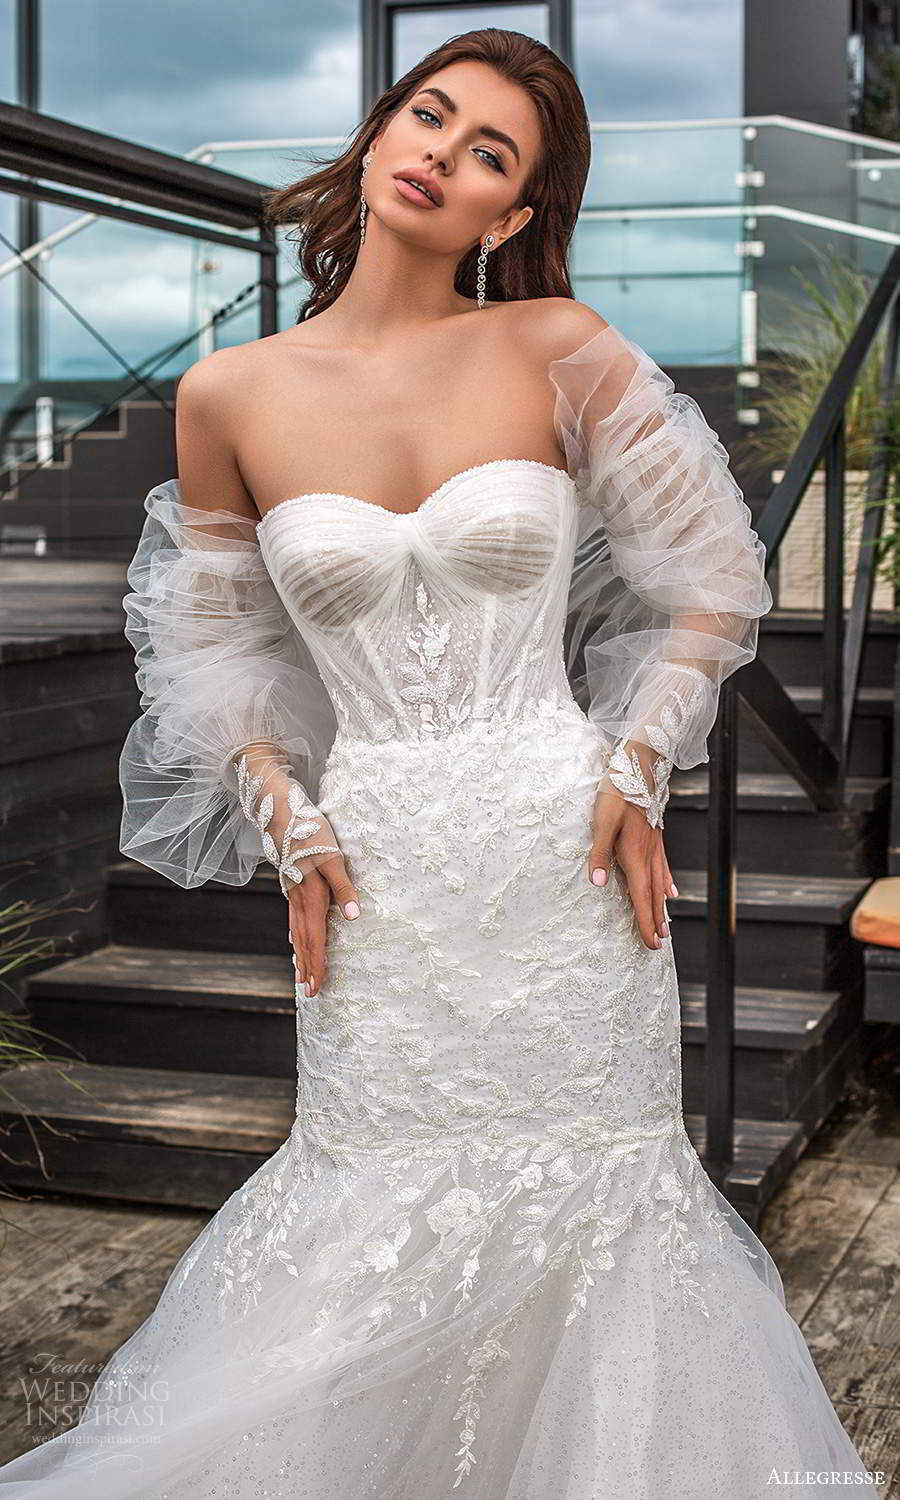 allegresse 2021 bridal detached bishop sleeves strapless sweetheart neckline fully embellished fit flare wedding dress chapel train (4) zv